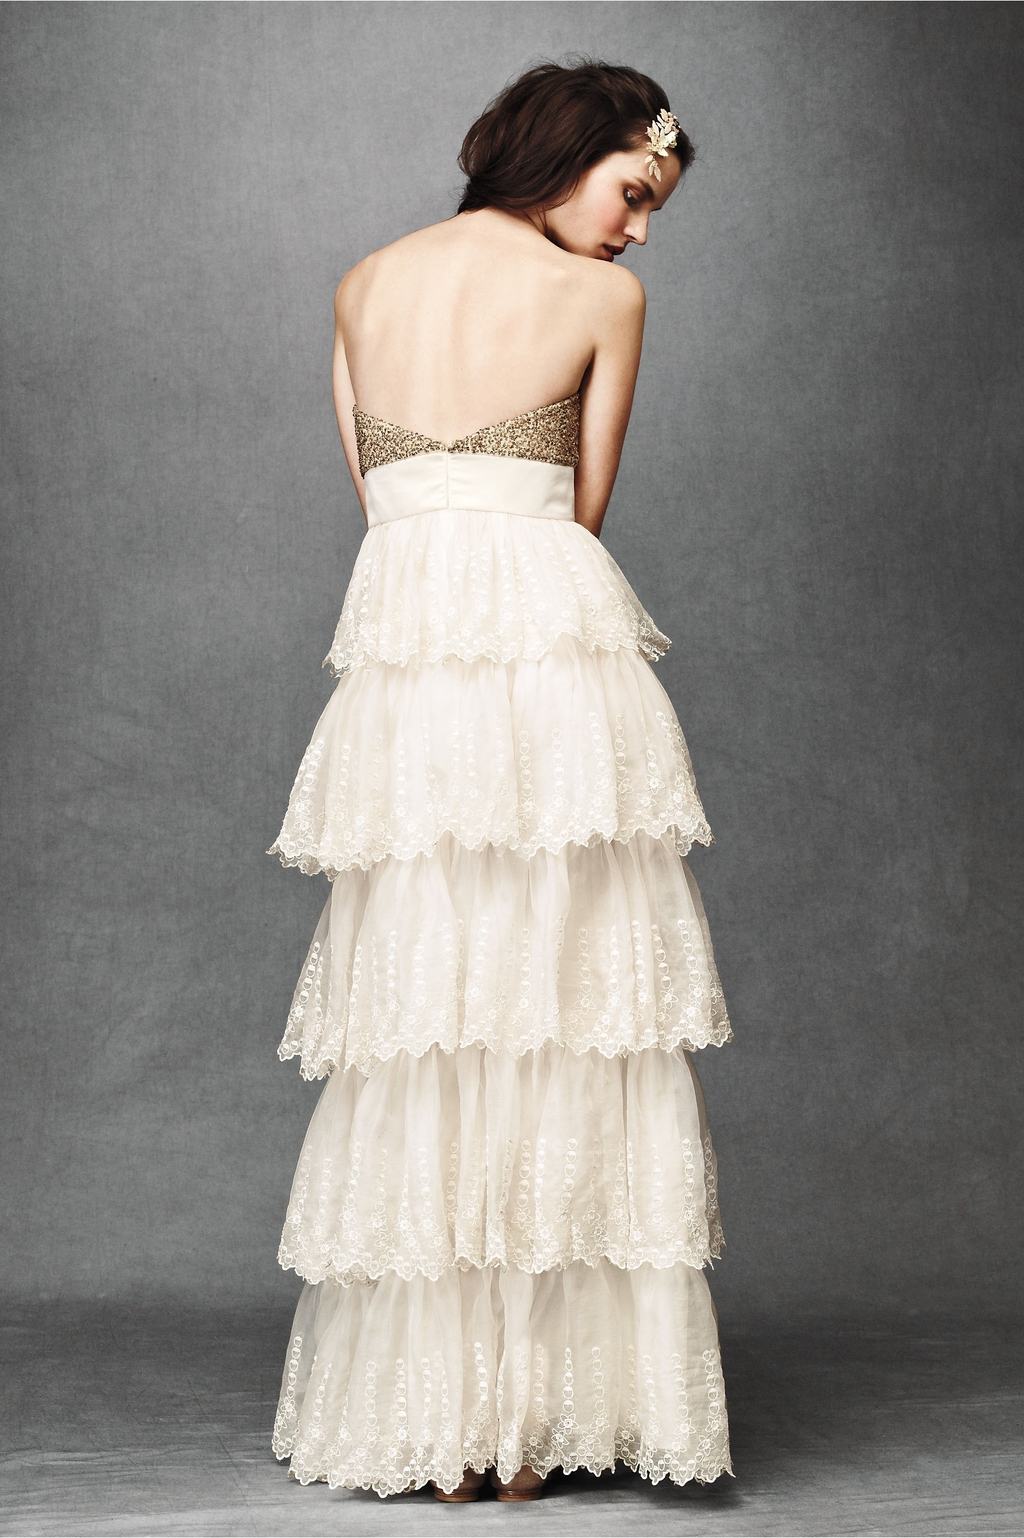 Burnished-organza-wedding-dress-2011-strapless-empire-ruffled-tiers-bhldn-back.full